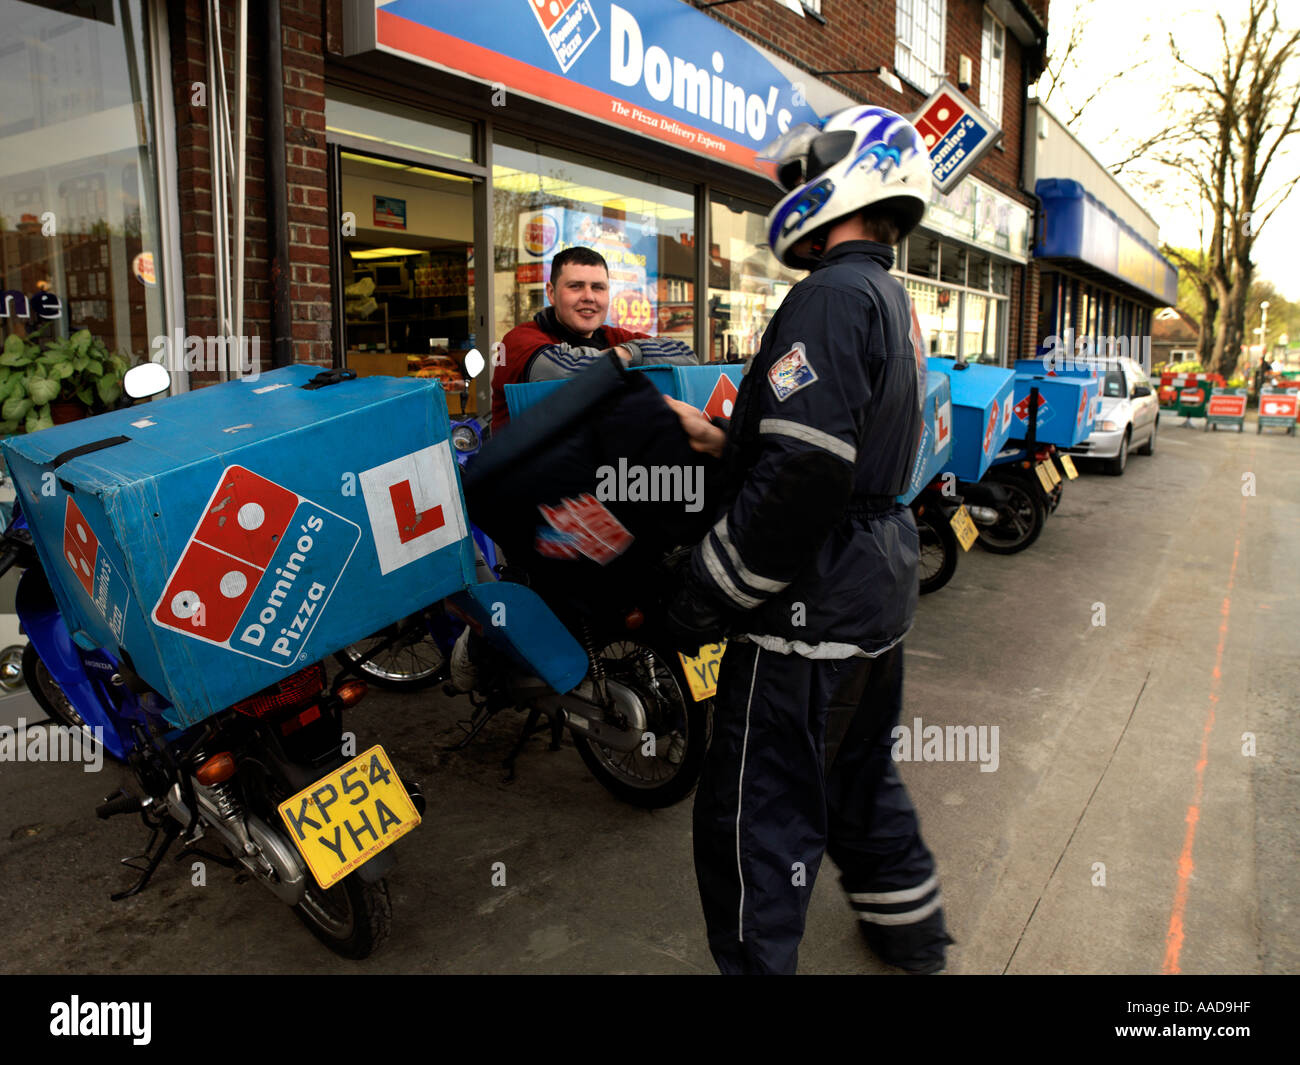 Domino Pizza Delivery >> Delivery Rider Outside Dominos Pizza In Sutton Surrey England